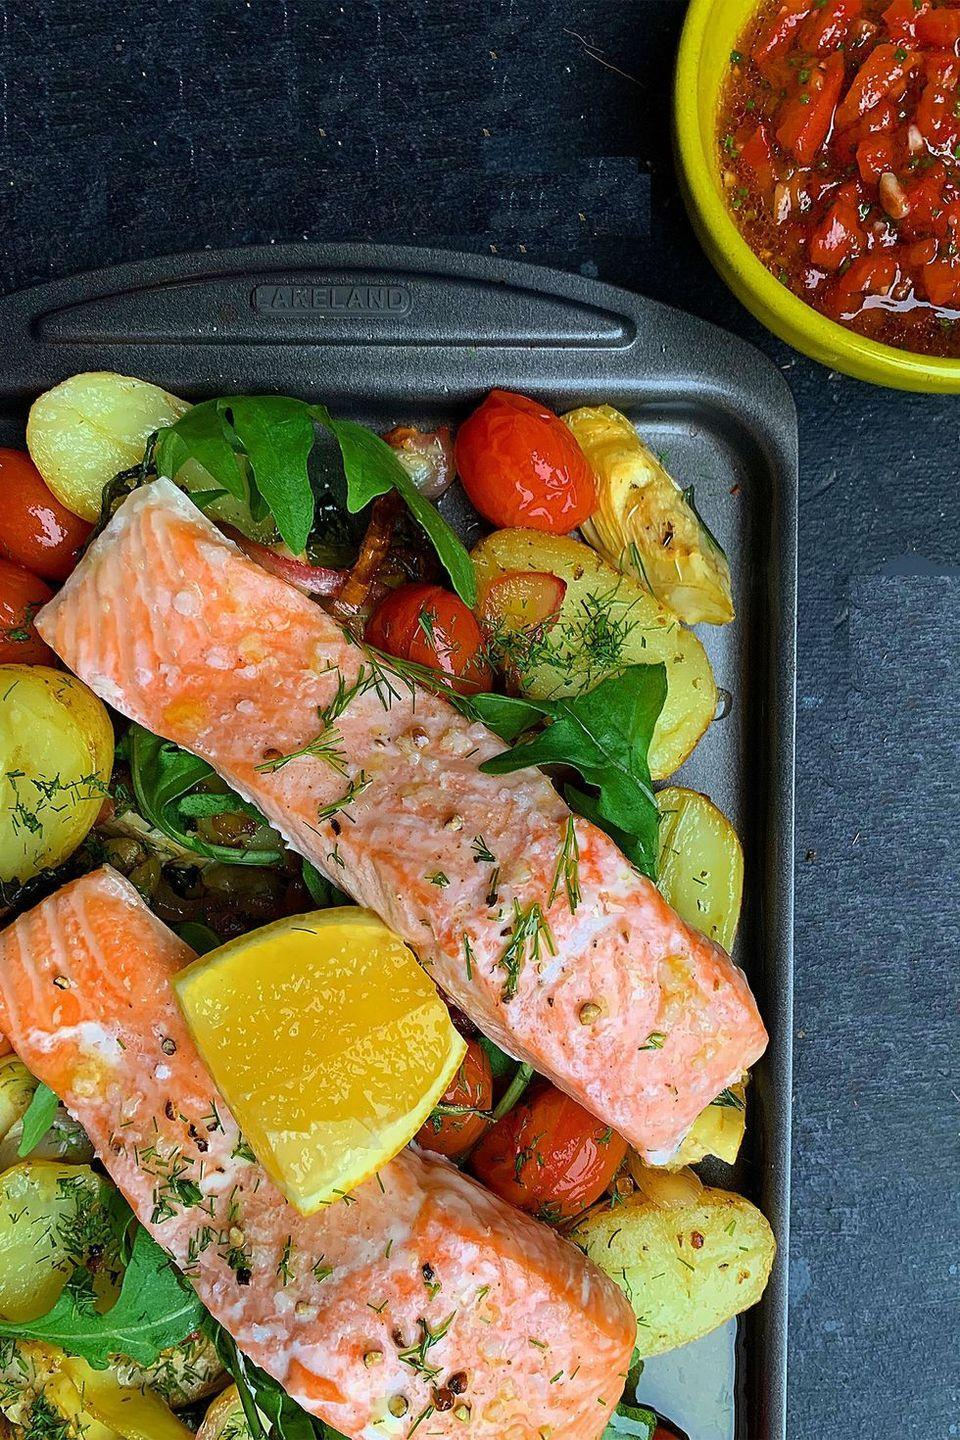 """<p>If you're after an easy, tasty and <a href=""""https://www.delish.com/uk/cooking/recipes/g29871554/healthy-dinner-recipes/"""" rel=""""nofollow noopener"""" target=""""_blank"""" data-ylk=""""slk:healthy dinner"""" class=""""link rapid-noclick-resp"""">healthy dinner</a> recipe, than this <a href=""""https://www.delish.com/uk/cooking/recipes/g29843028/healthy-salmon-recipes/"""" rel=""""nofollow noopener"""" target=""""_blank"""" data-ylk=""""slk:salmon"""" class=""""link rapid-noclick-resp"""">salmon</a> traybake is the one for you. Packed full of Mediterranean antipasti style veggies like artichokes, tomatoes and olives, it's a dinner table win.</p><p>Get the <a href=""""https://www.delish.com/uk/cooking/recipes/a33619206/mediterranean-salmon-traybake/"""" rel=""""nofollow noopener"""" target=""""_blank"""" data-ylk=""""slk:Mediterranean Salmon Traybake"""" class=""""link rapid-noclick-resp"""">Mediterranean Salmon Traybake</a> recipe.</p>"""